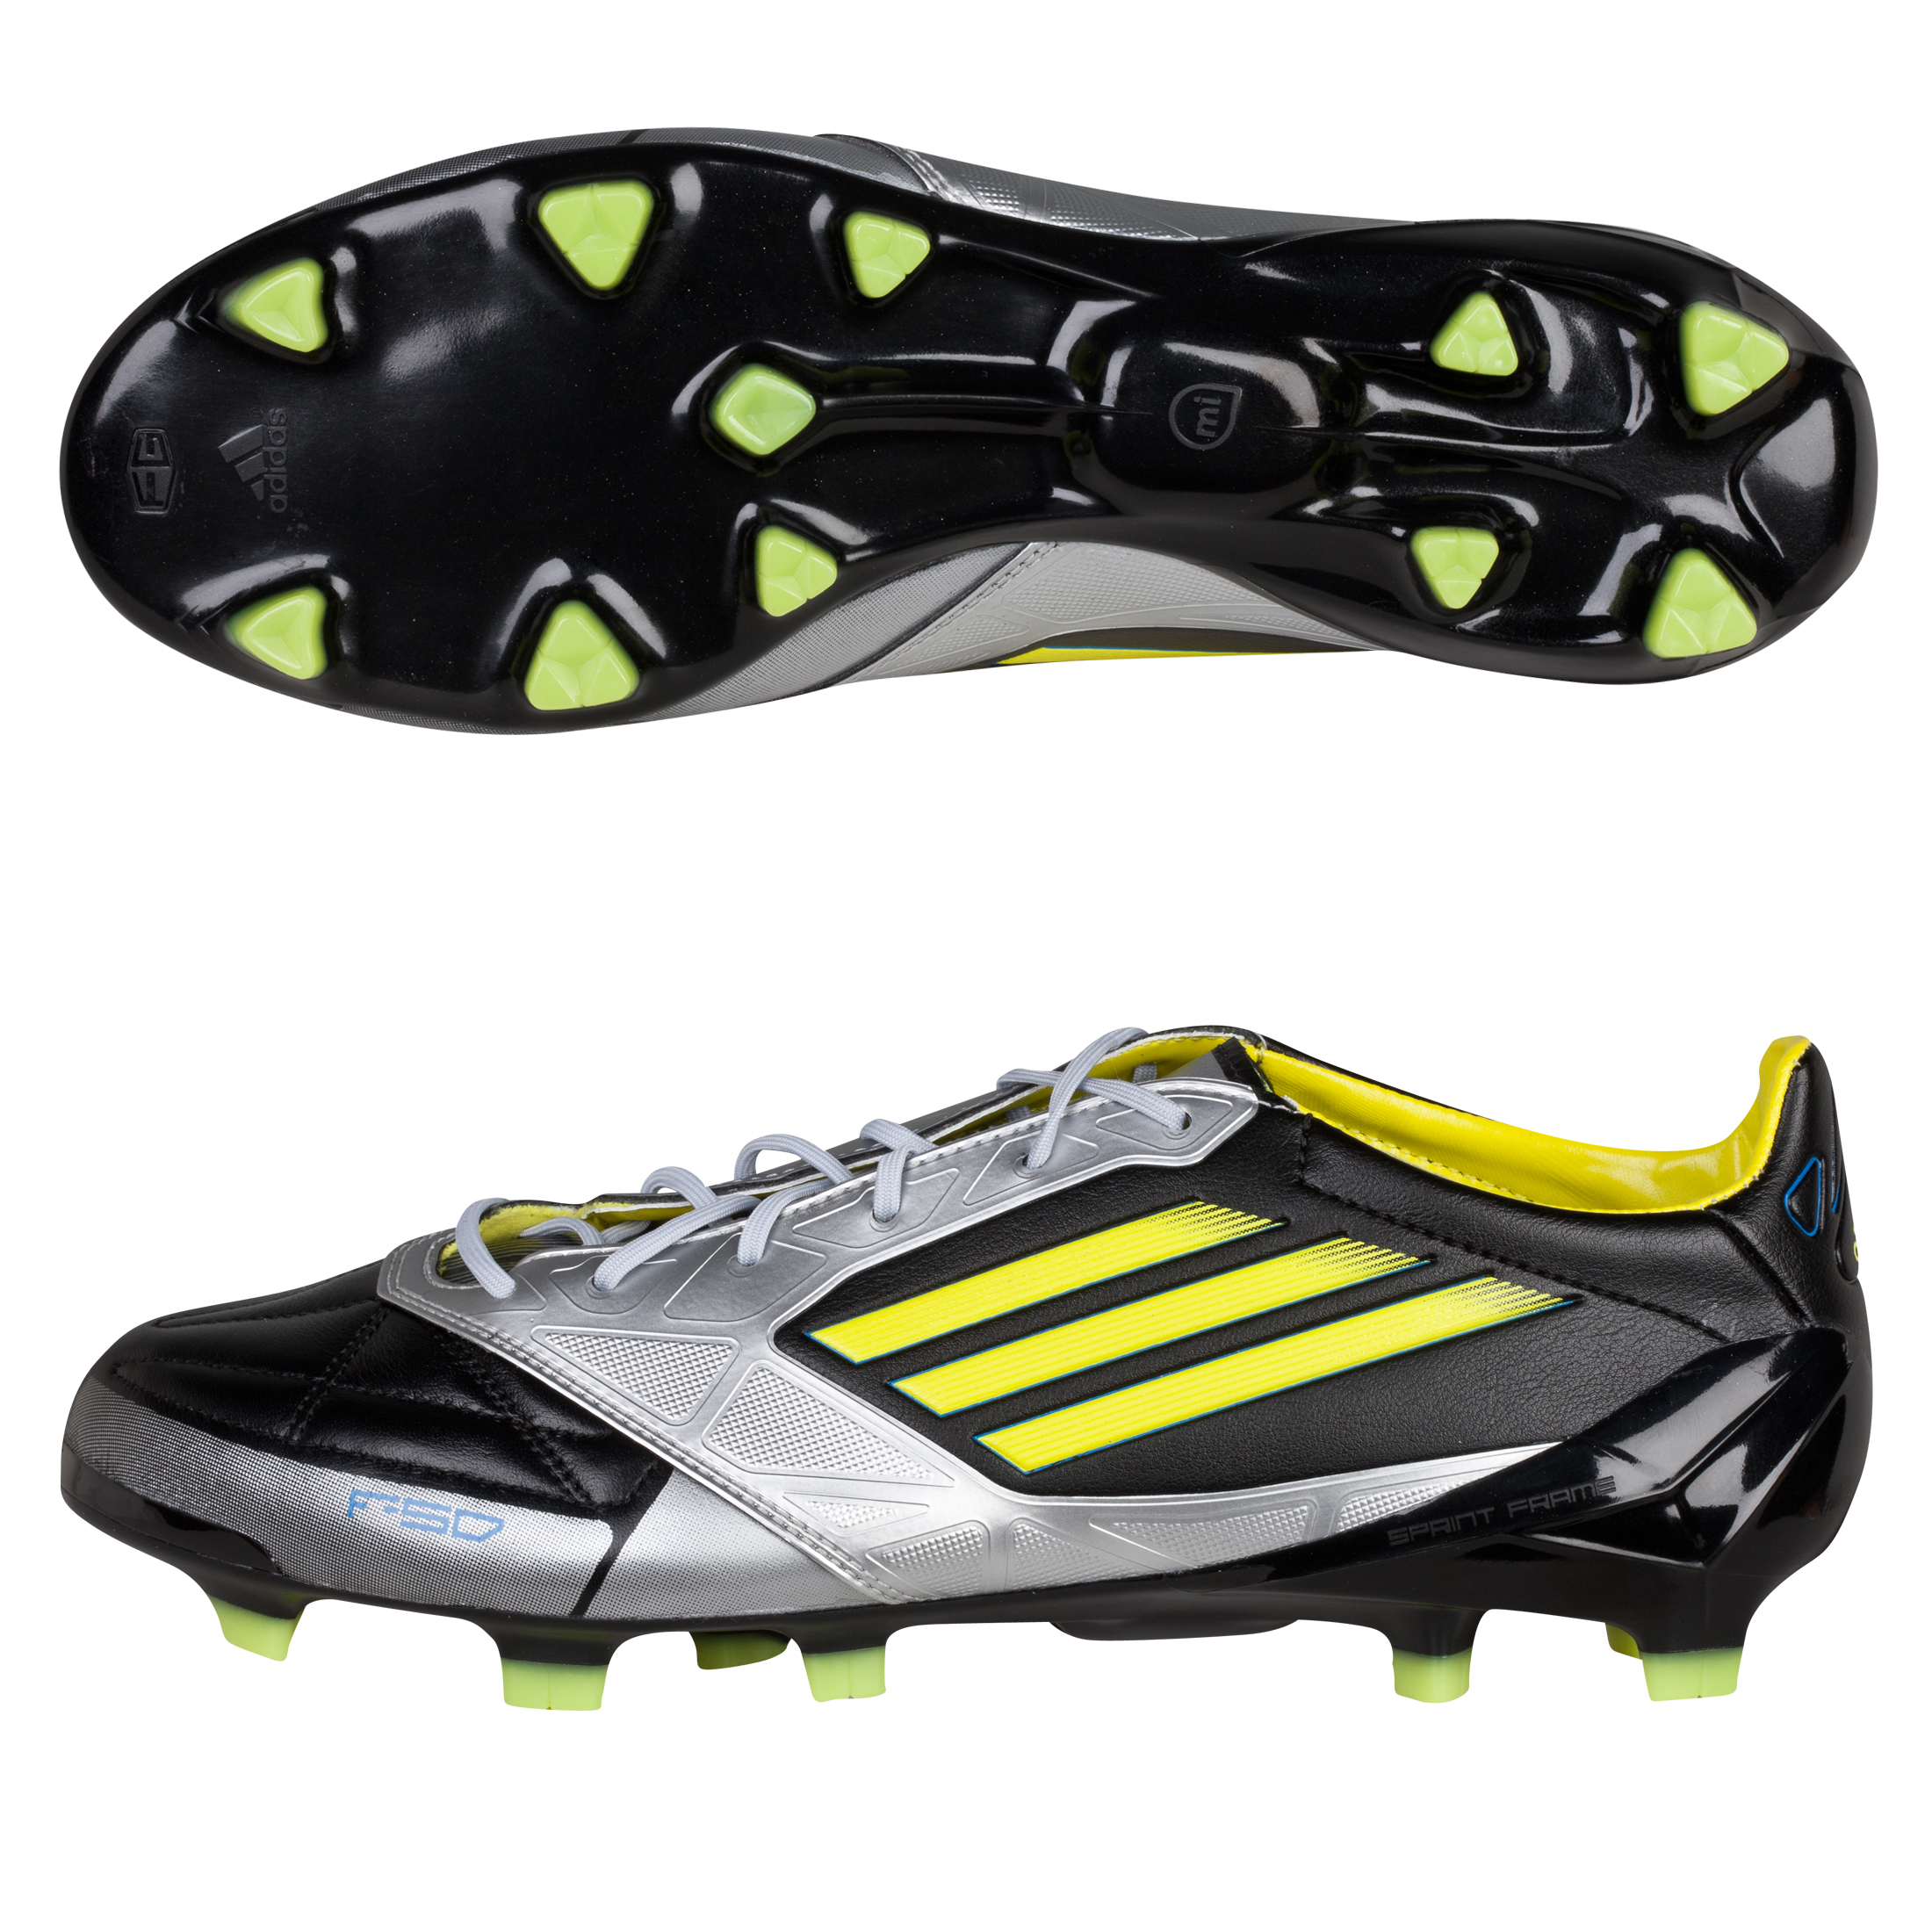 Adidas F50 Adizero TRX Firm Ground Leather Football Boots - Black/Lab Lime/Metallic Silver